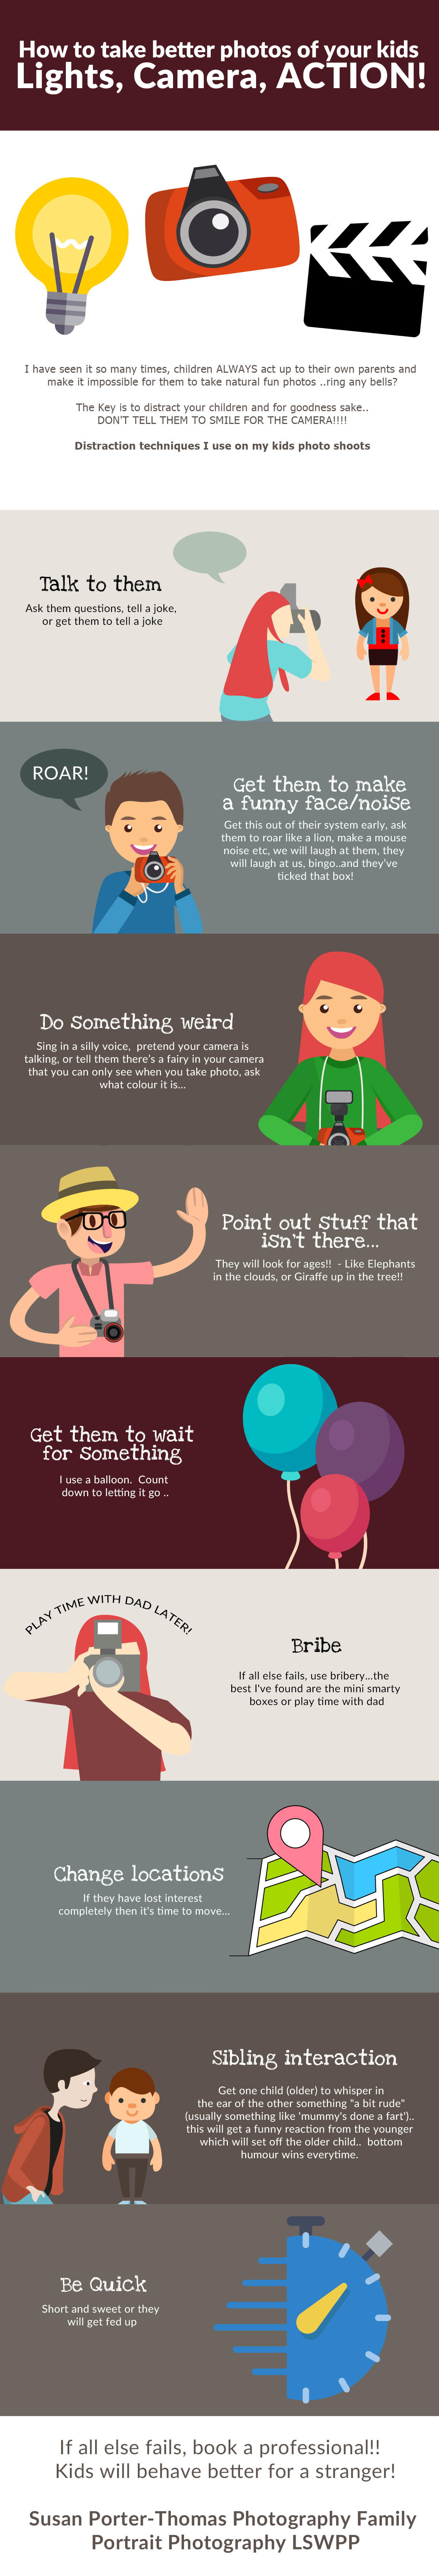 Photography tips info graphic